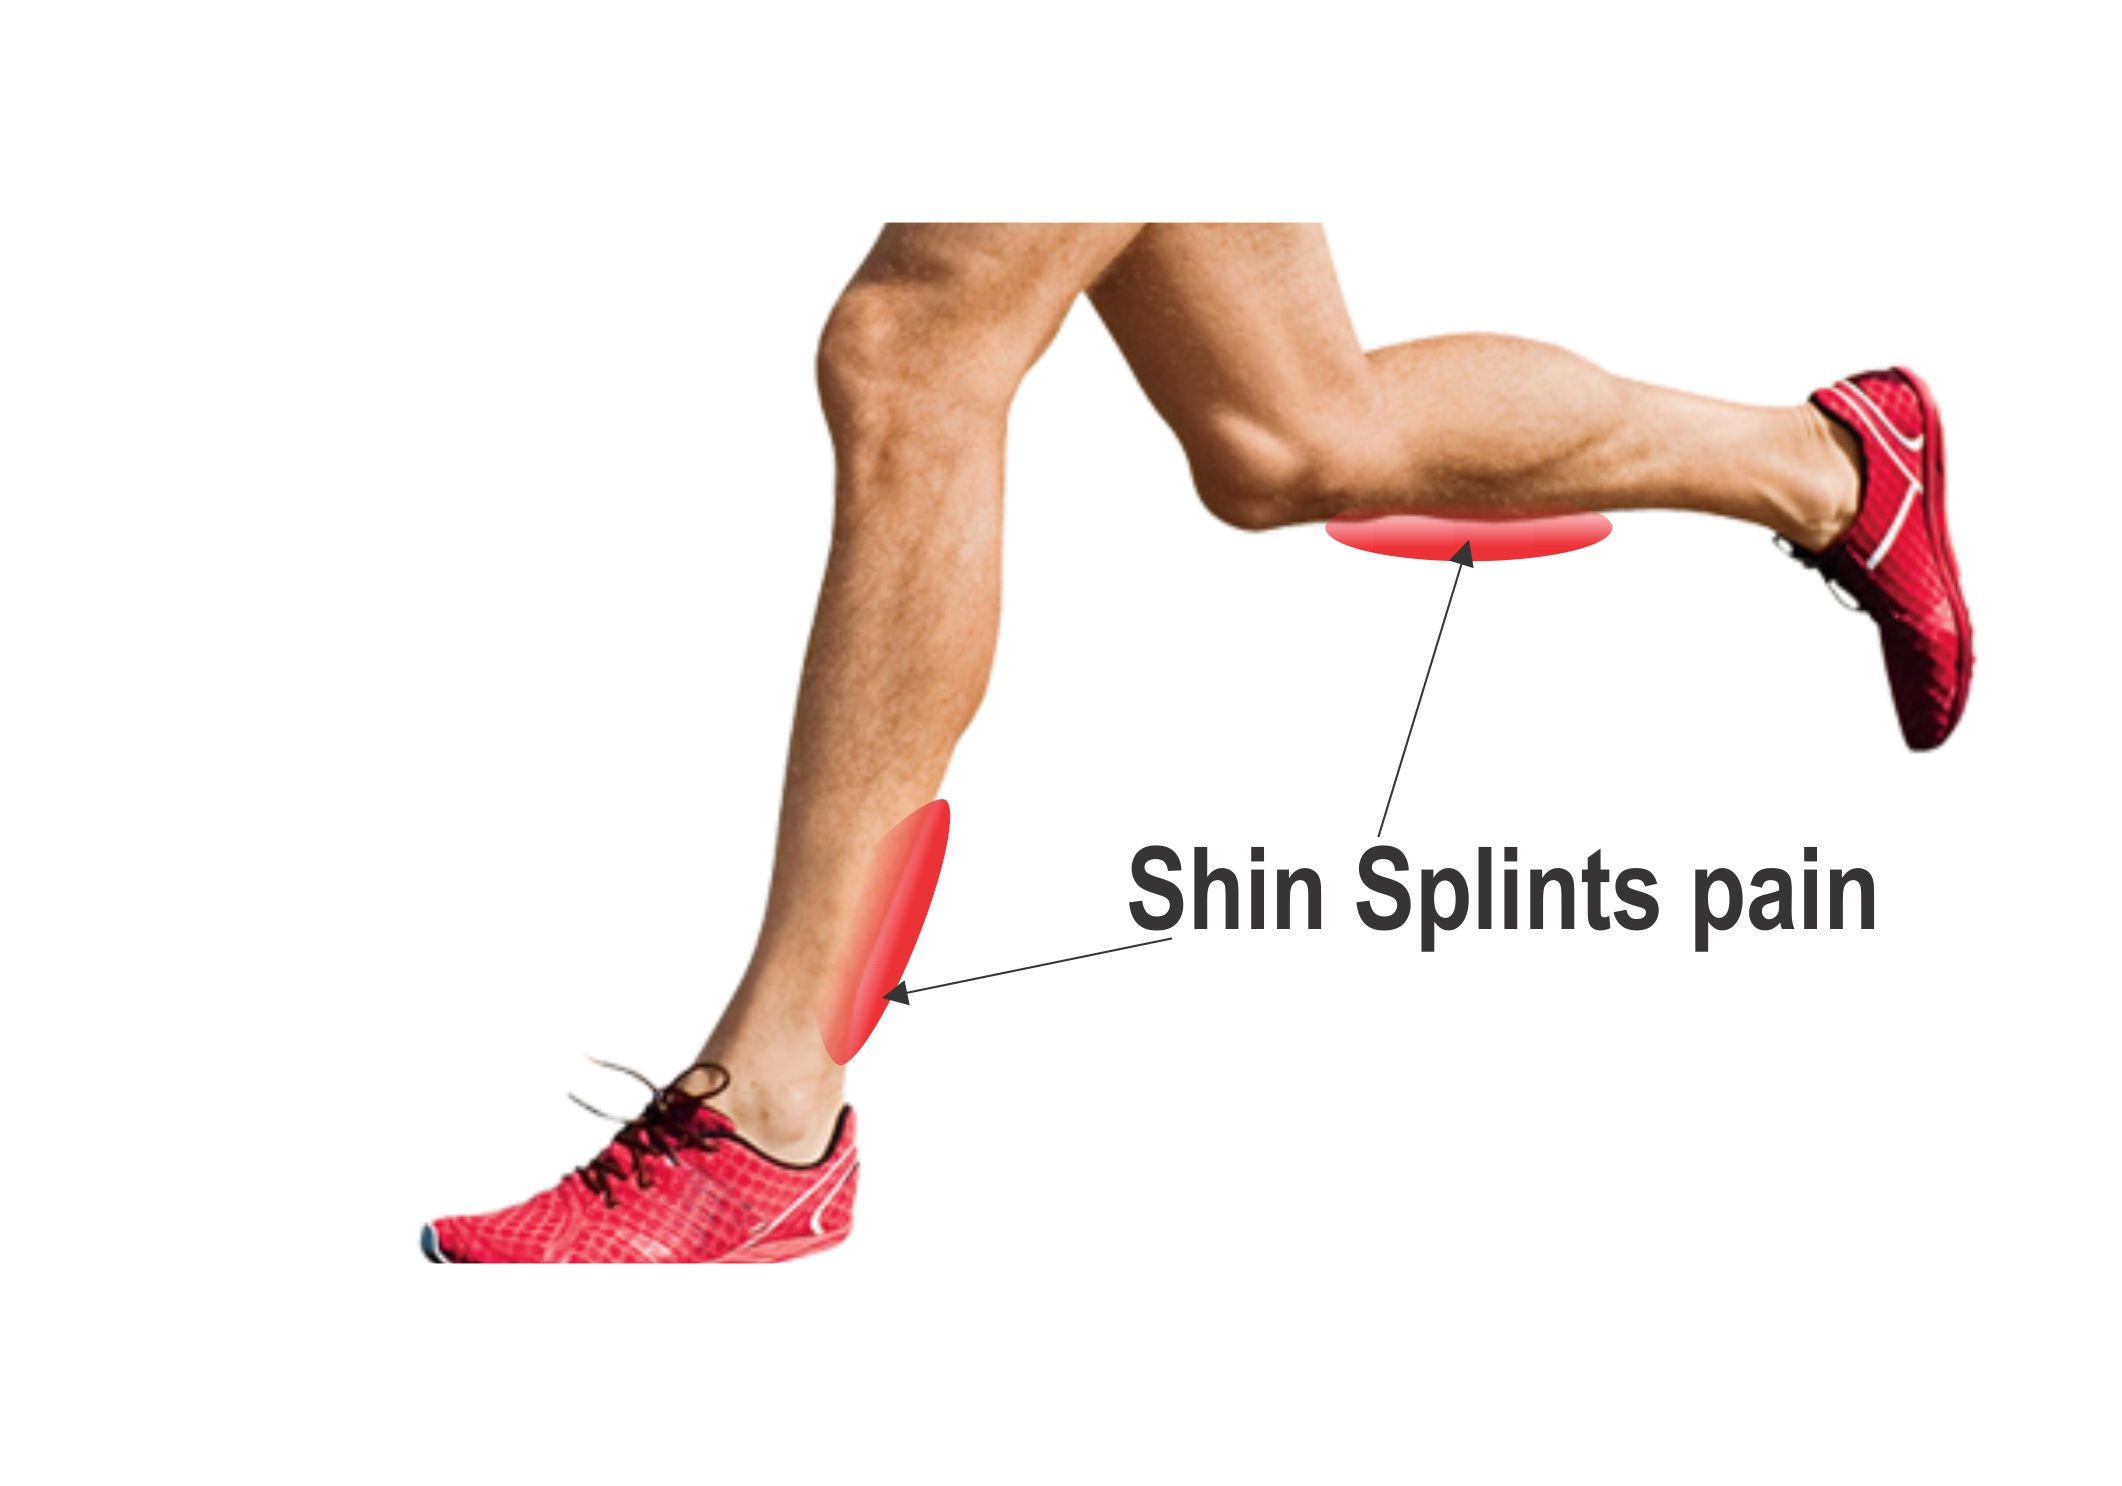 Shin Splints R.I.C.E Treatments